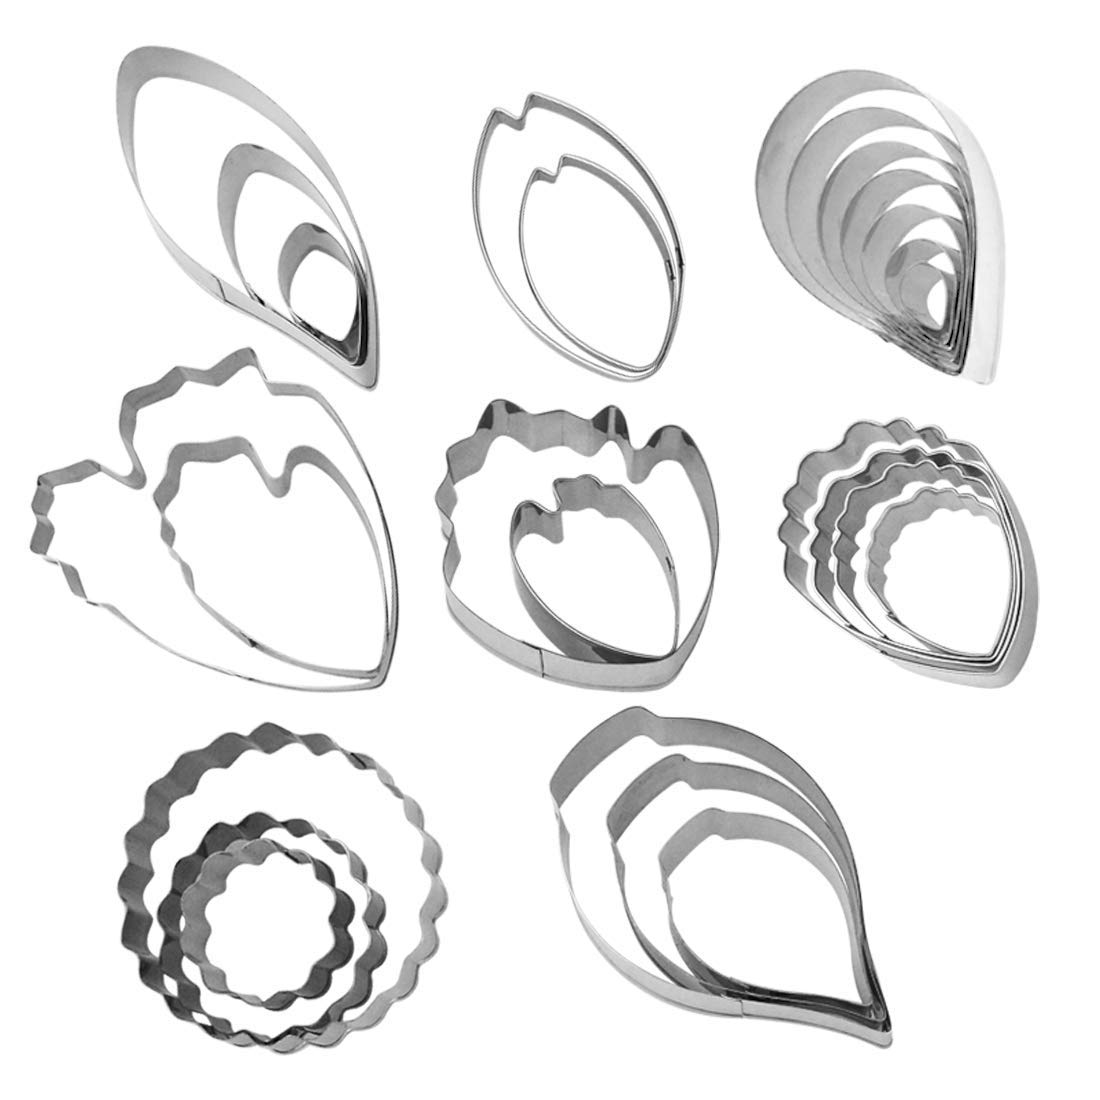 Cookie Cutters Set, Yookat 26pcs Stainless Steel Flower Biscuit Cutters, Water Drop Rose Petals,Peony Petals,Tulip Petals,Carnation,Calla Lily Petals,Leaf Cutter, DIY Tools Pastry Cutters